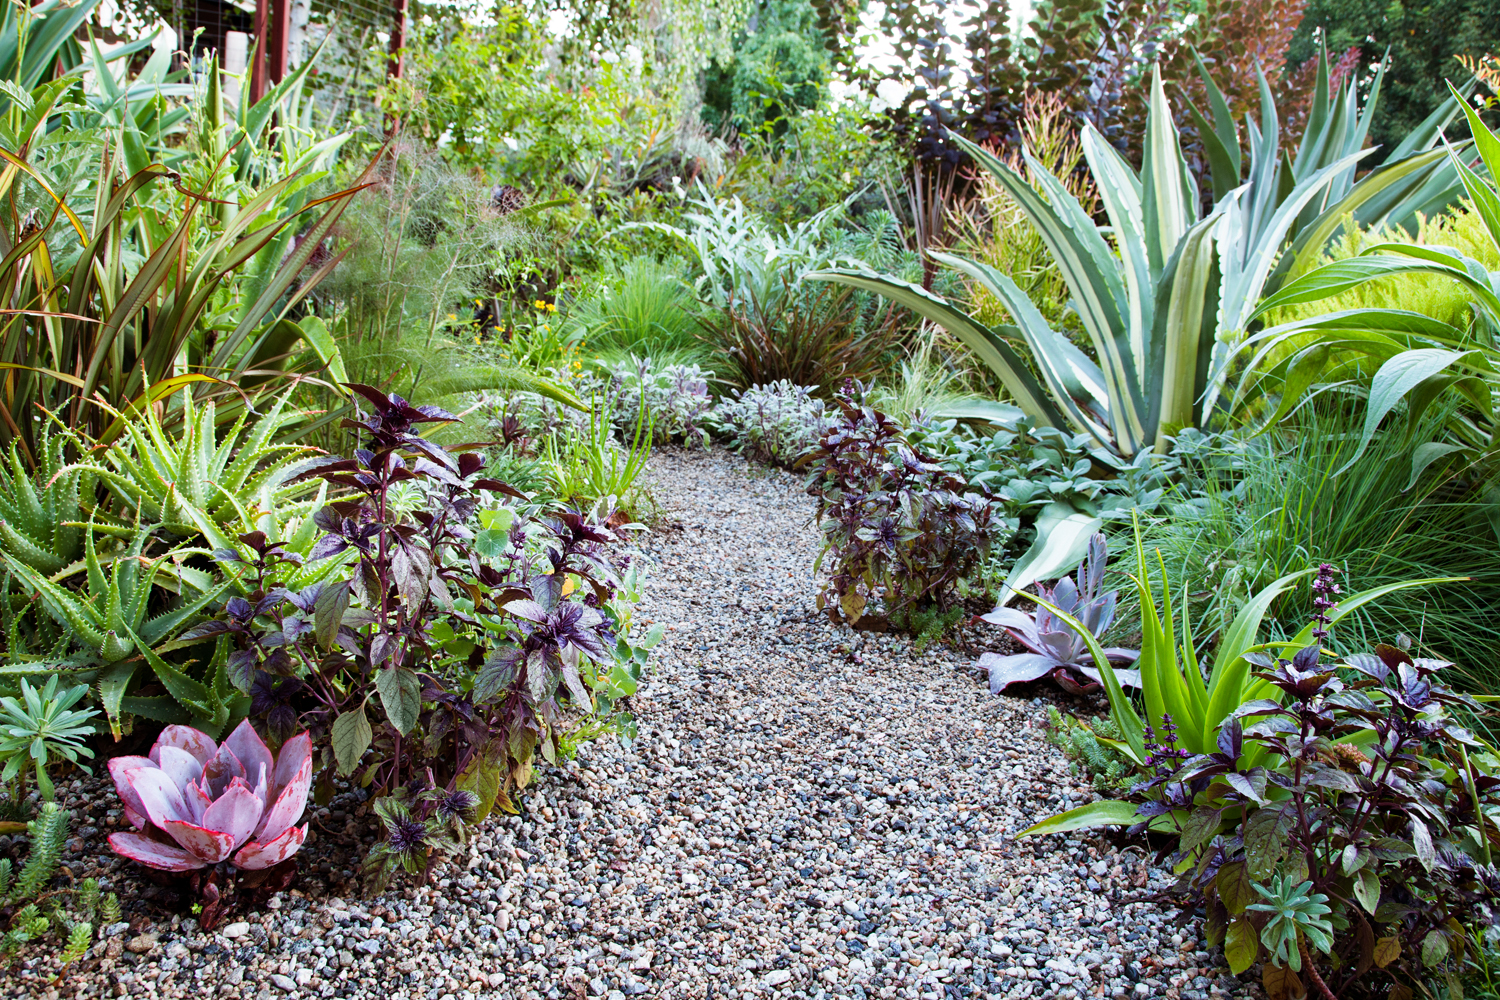 is your yard or garden small on space  get big ideas for making the most out of your outdoor